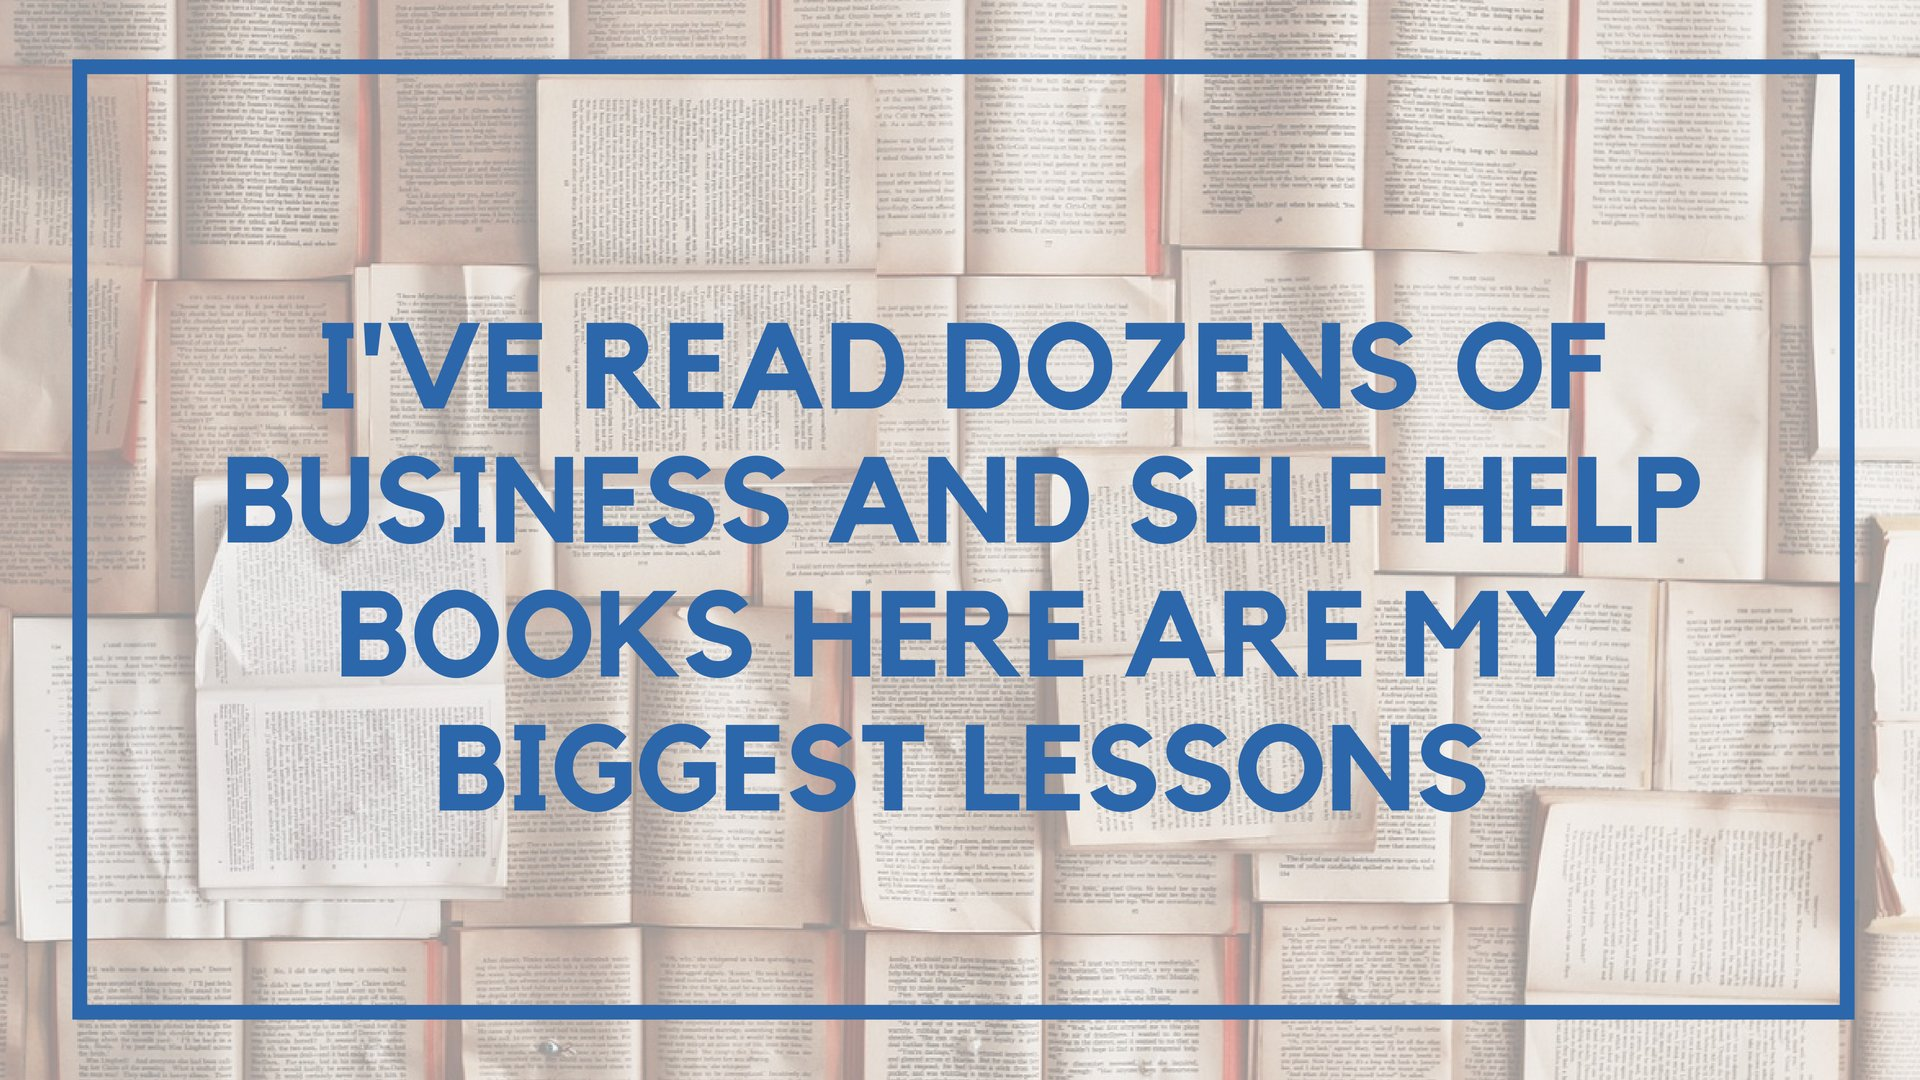 I've Read Dozens of Business and Self Help Books Here are My Biggest Lessons